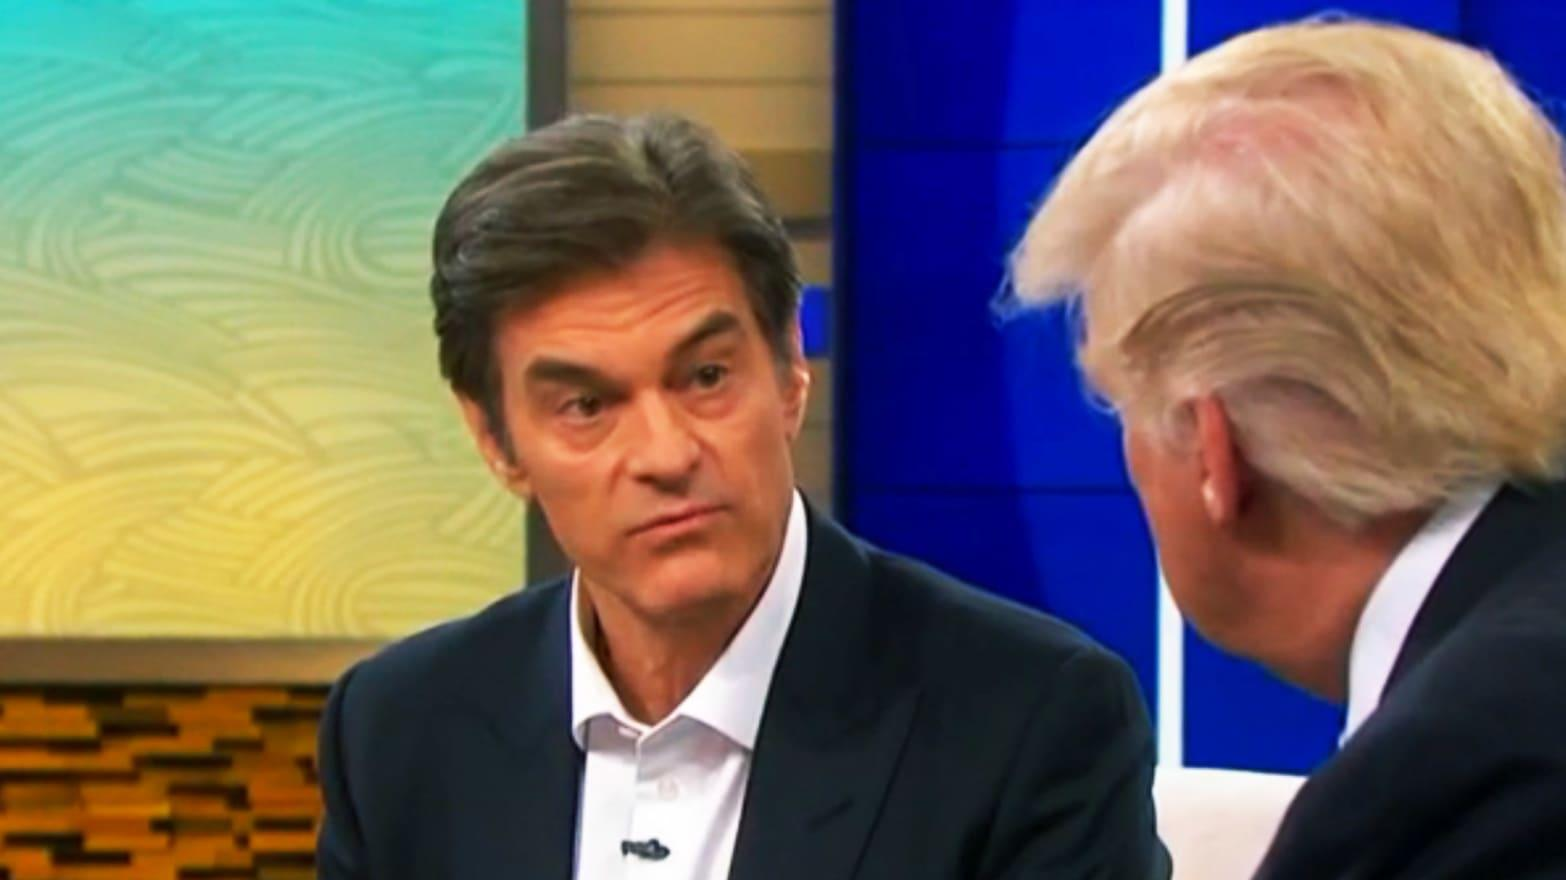 Dr. Oz Responds To Donald Trump's Claims That The Quarantine Will Be Over By Easter - 'There's No Way!'